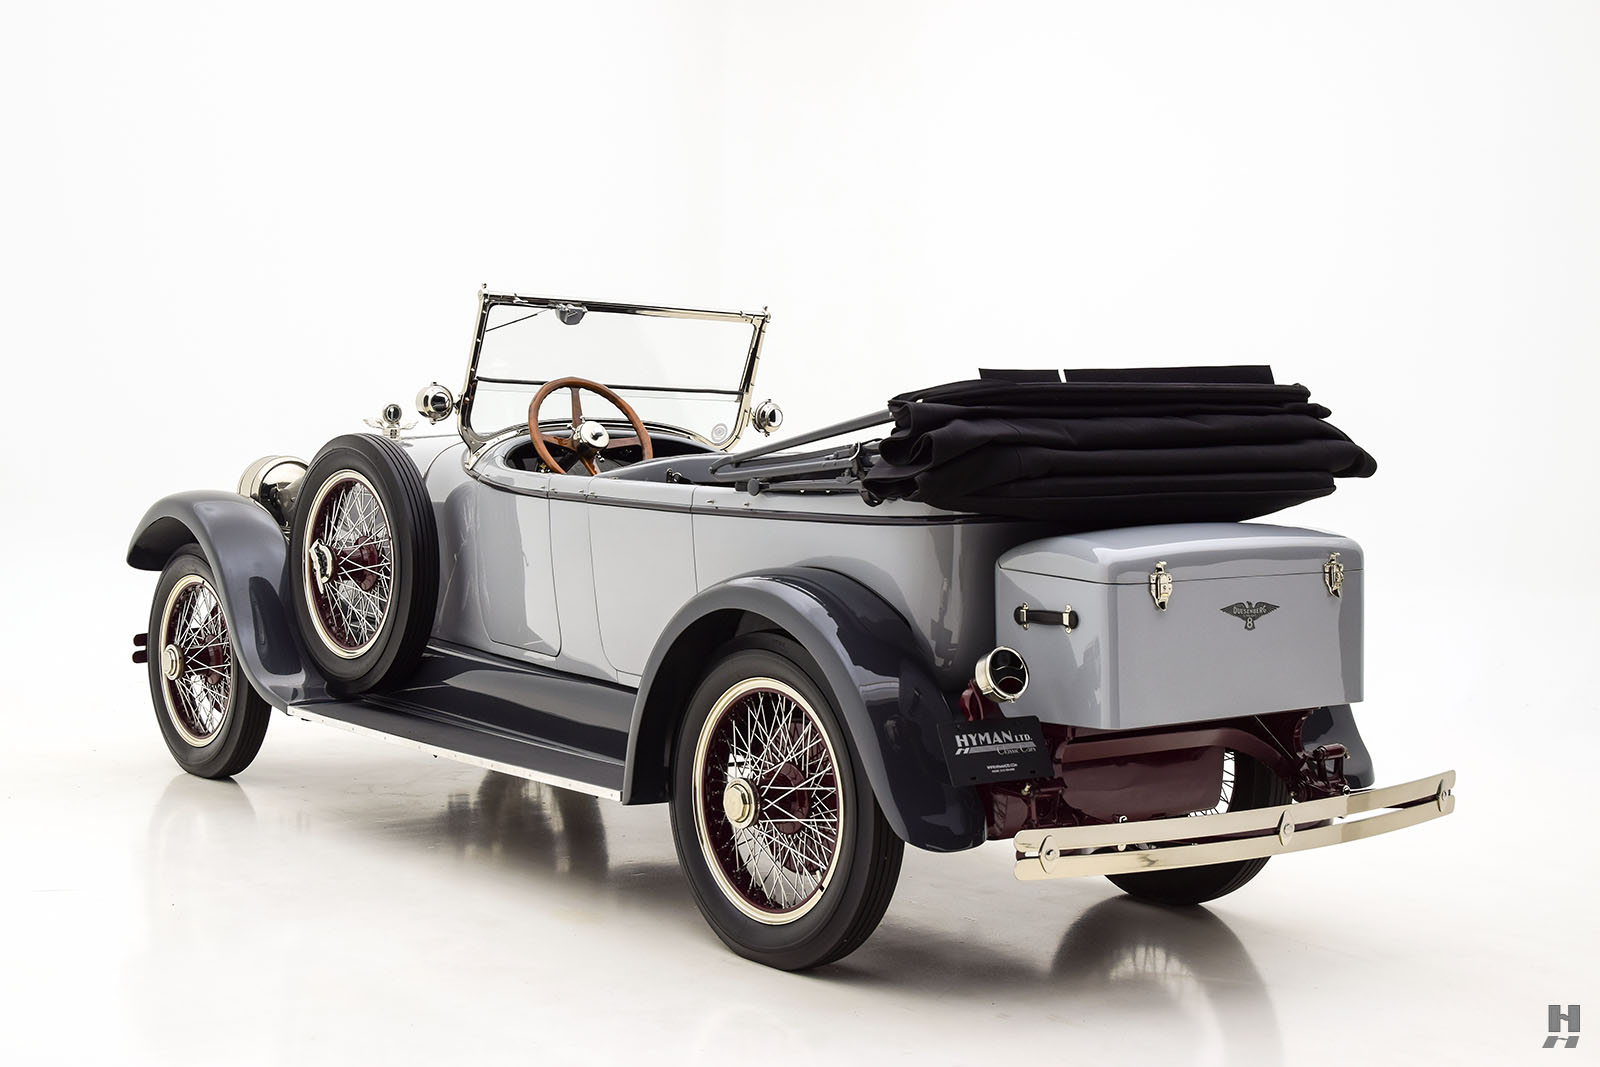 1922 Duesenberg Straight Eight Model A For Sale | Buy Classic ...